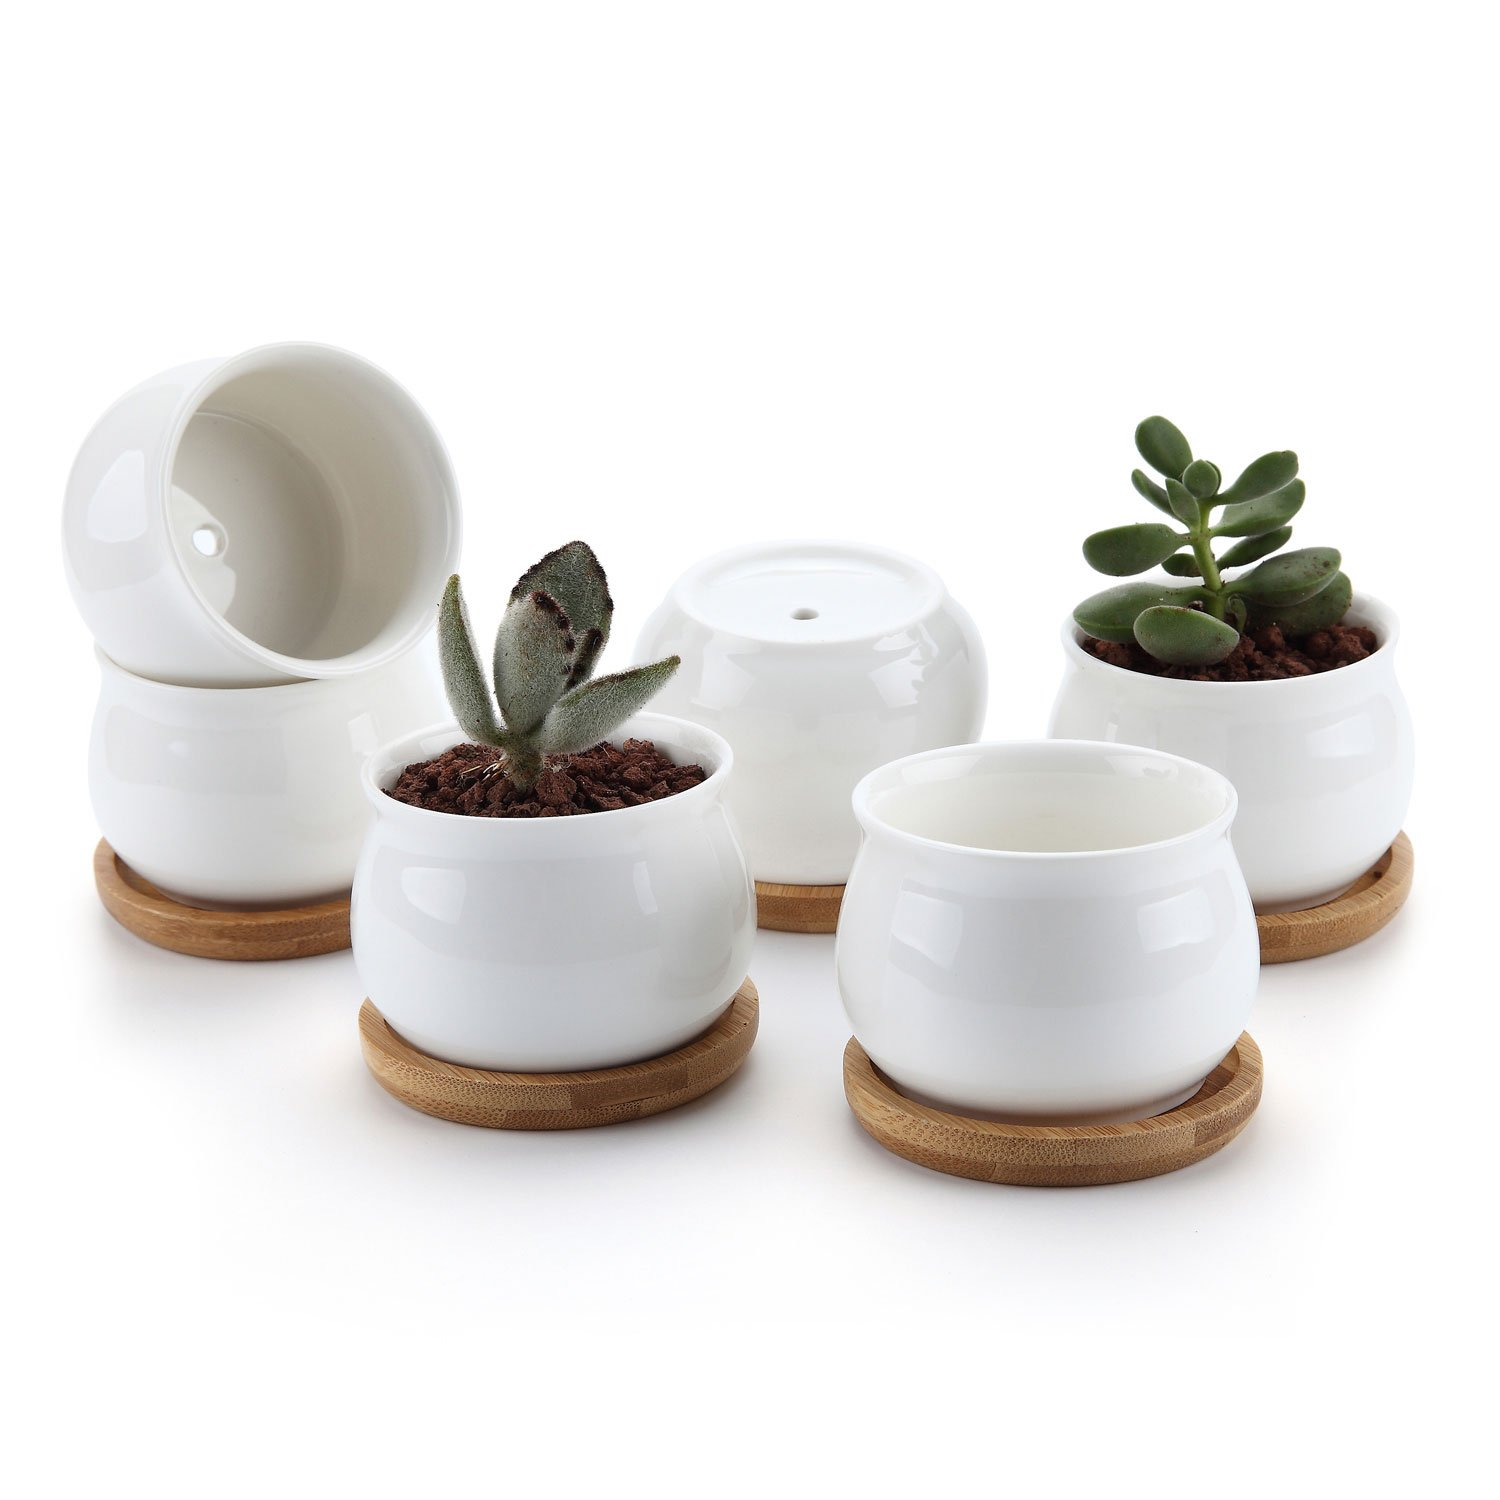 T4U Mini Succulent Pots White with Bamboo Trays - Ceramic Succulent Planters Indoor Jars with Drainage -Small Plant Cactus Holder Container Set of 6 - Home Office Desk Decoration Gift for Gardener